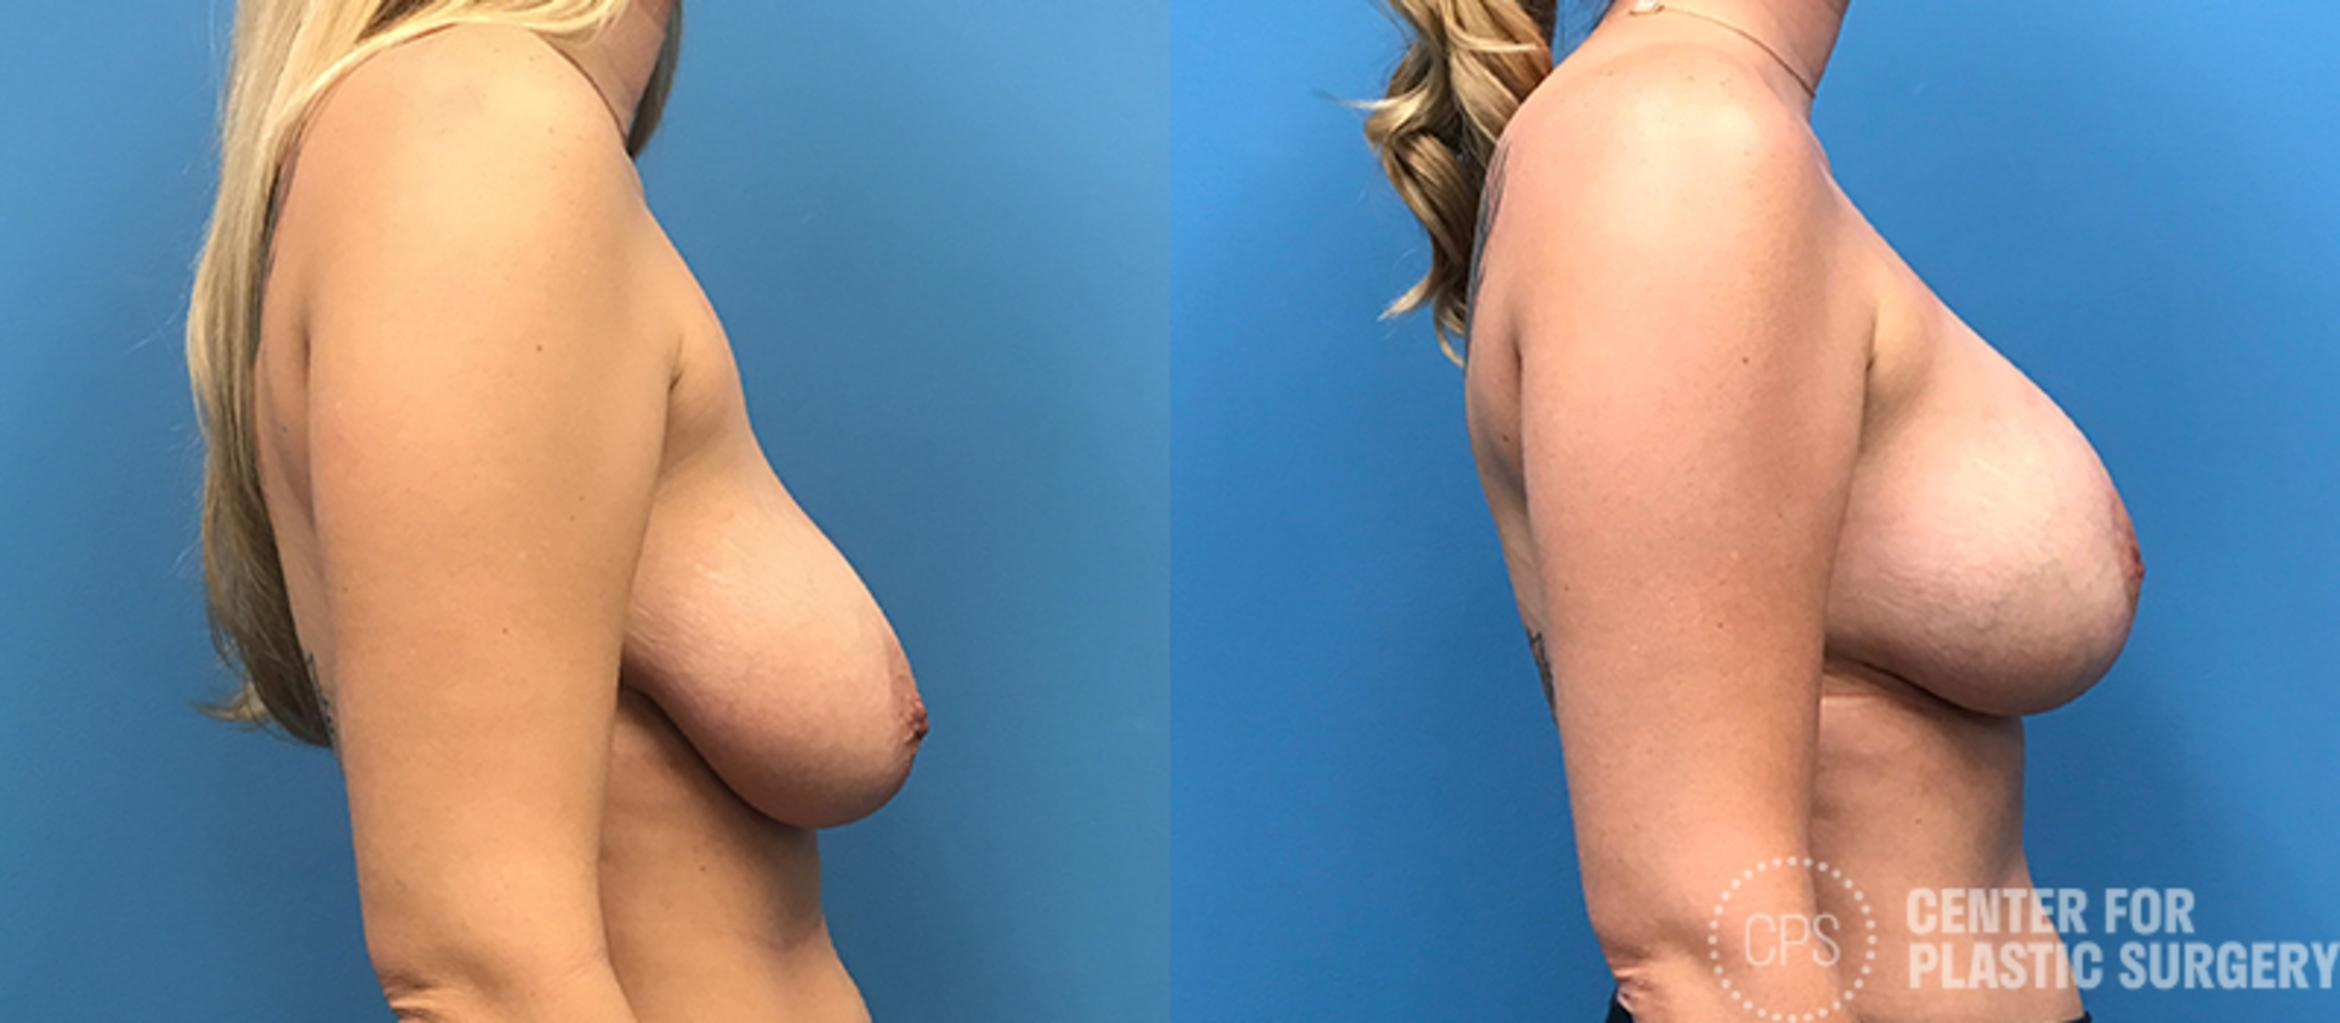 Breast Augmentation Case 115 Before & After Right Side | Annandale, VA & Chevy Chase, MD, Washington D.C. Metropolitan Area | Center for Plastic Surgery